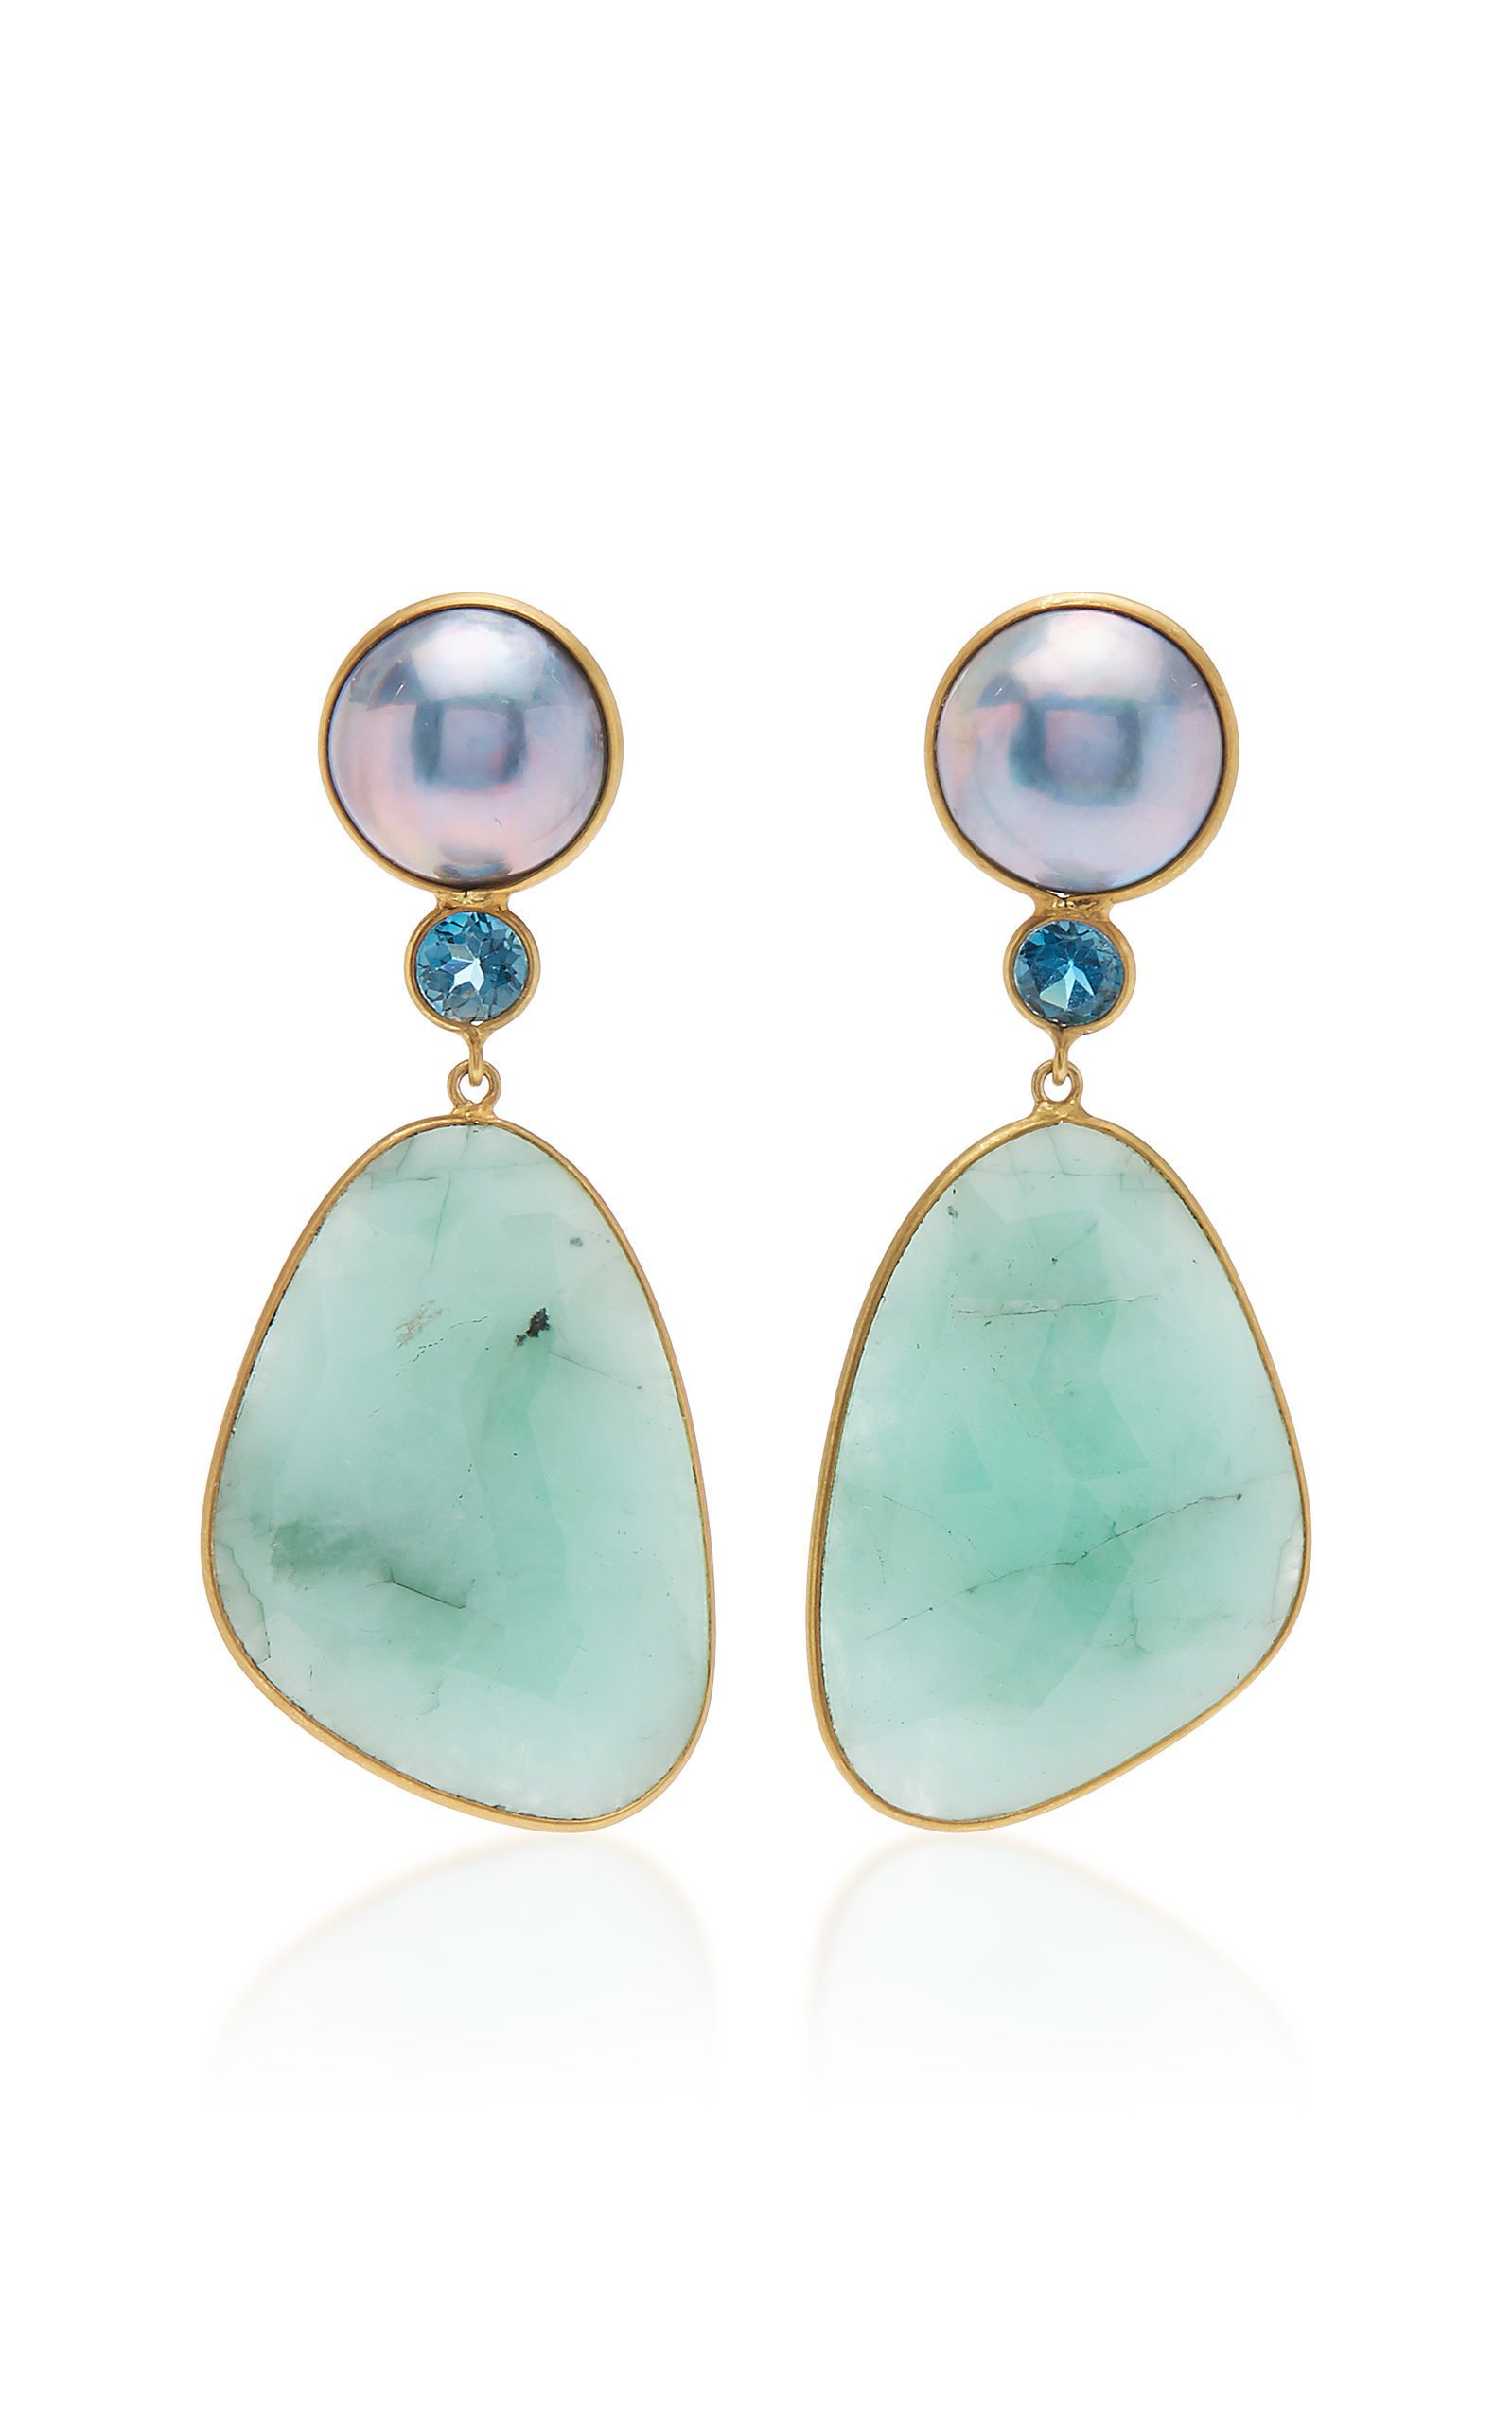 Bahina One of a Kind Earrings with Blue Mabe Pearl London Blue Topaz and Emerald